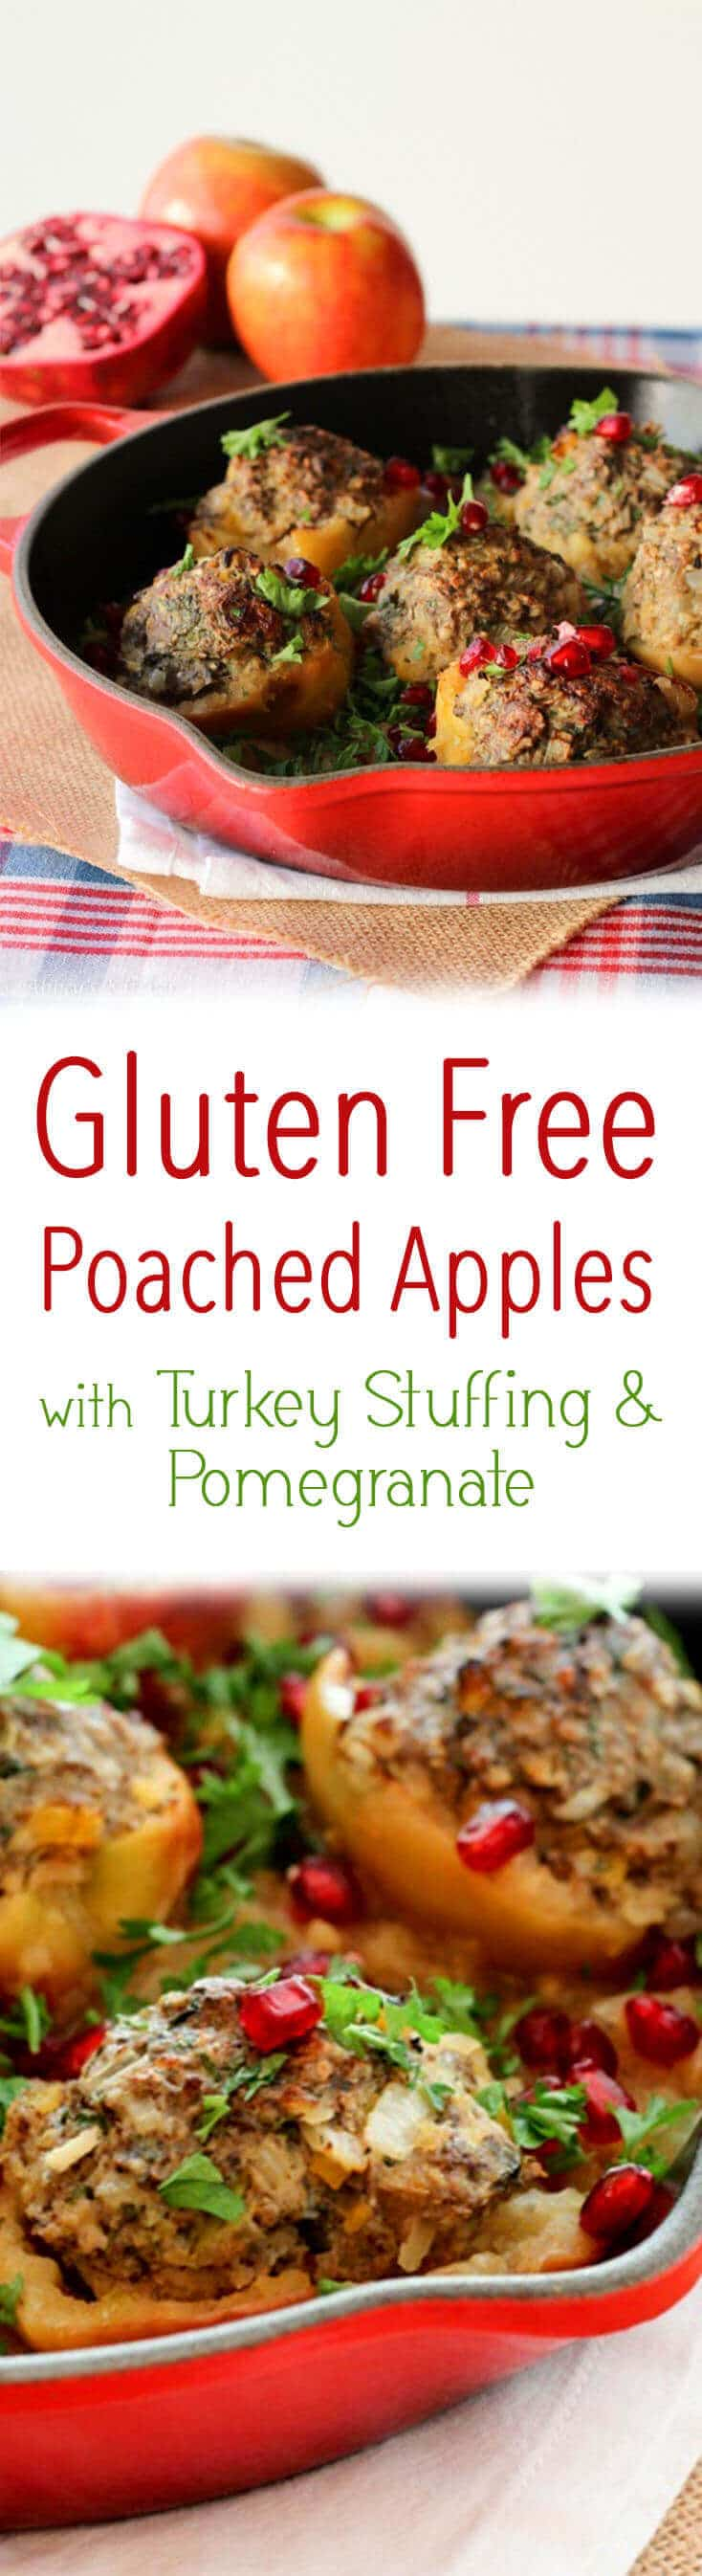 These Poached Apple with Turkey Stuffing are a great gluten free holiday recipe!